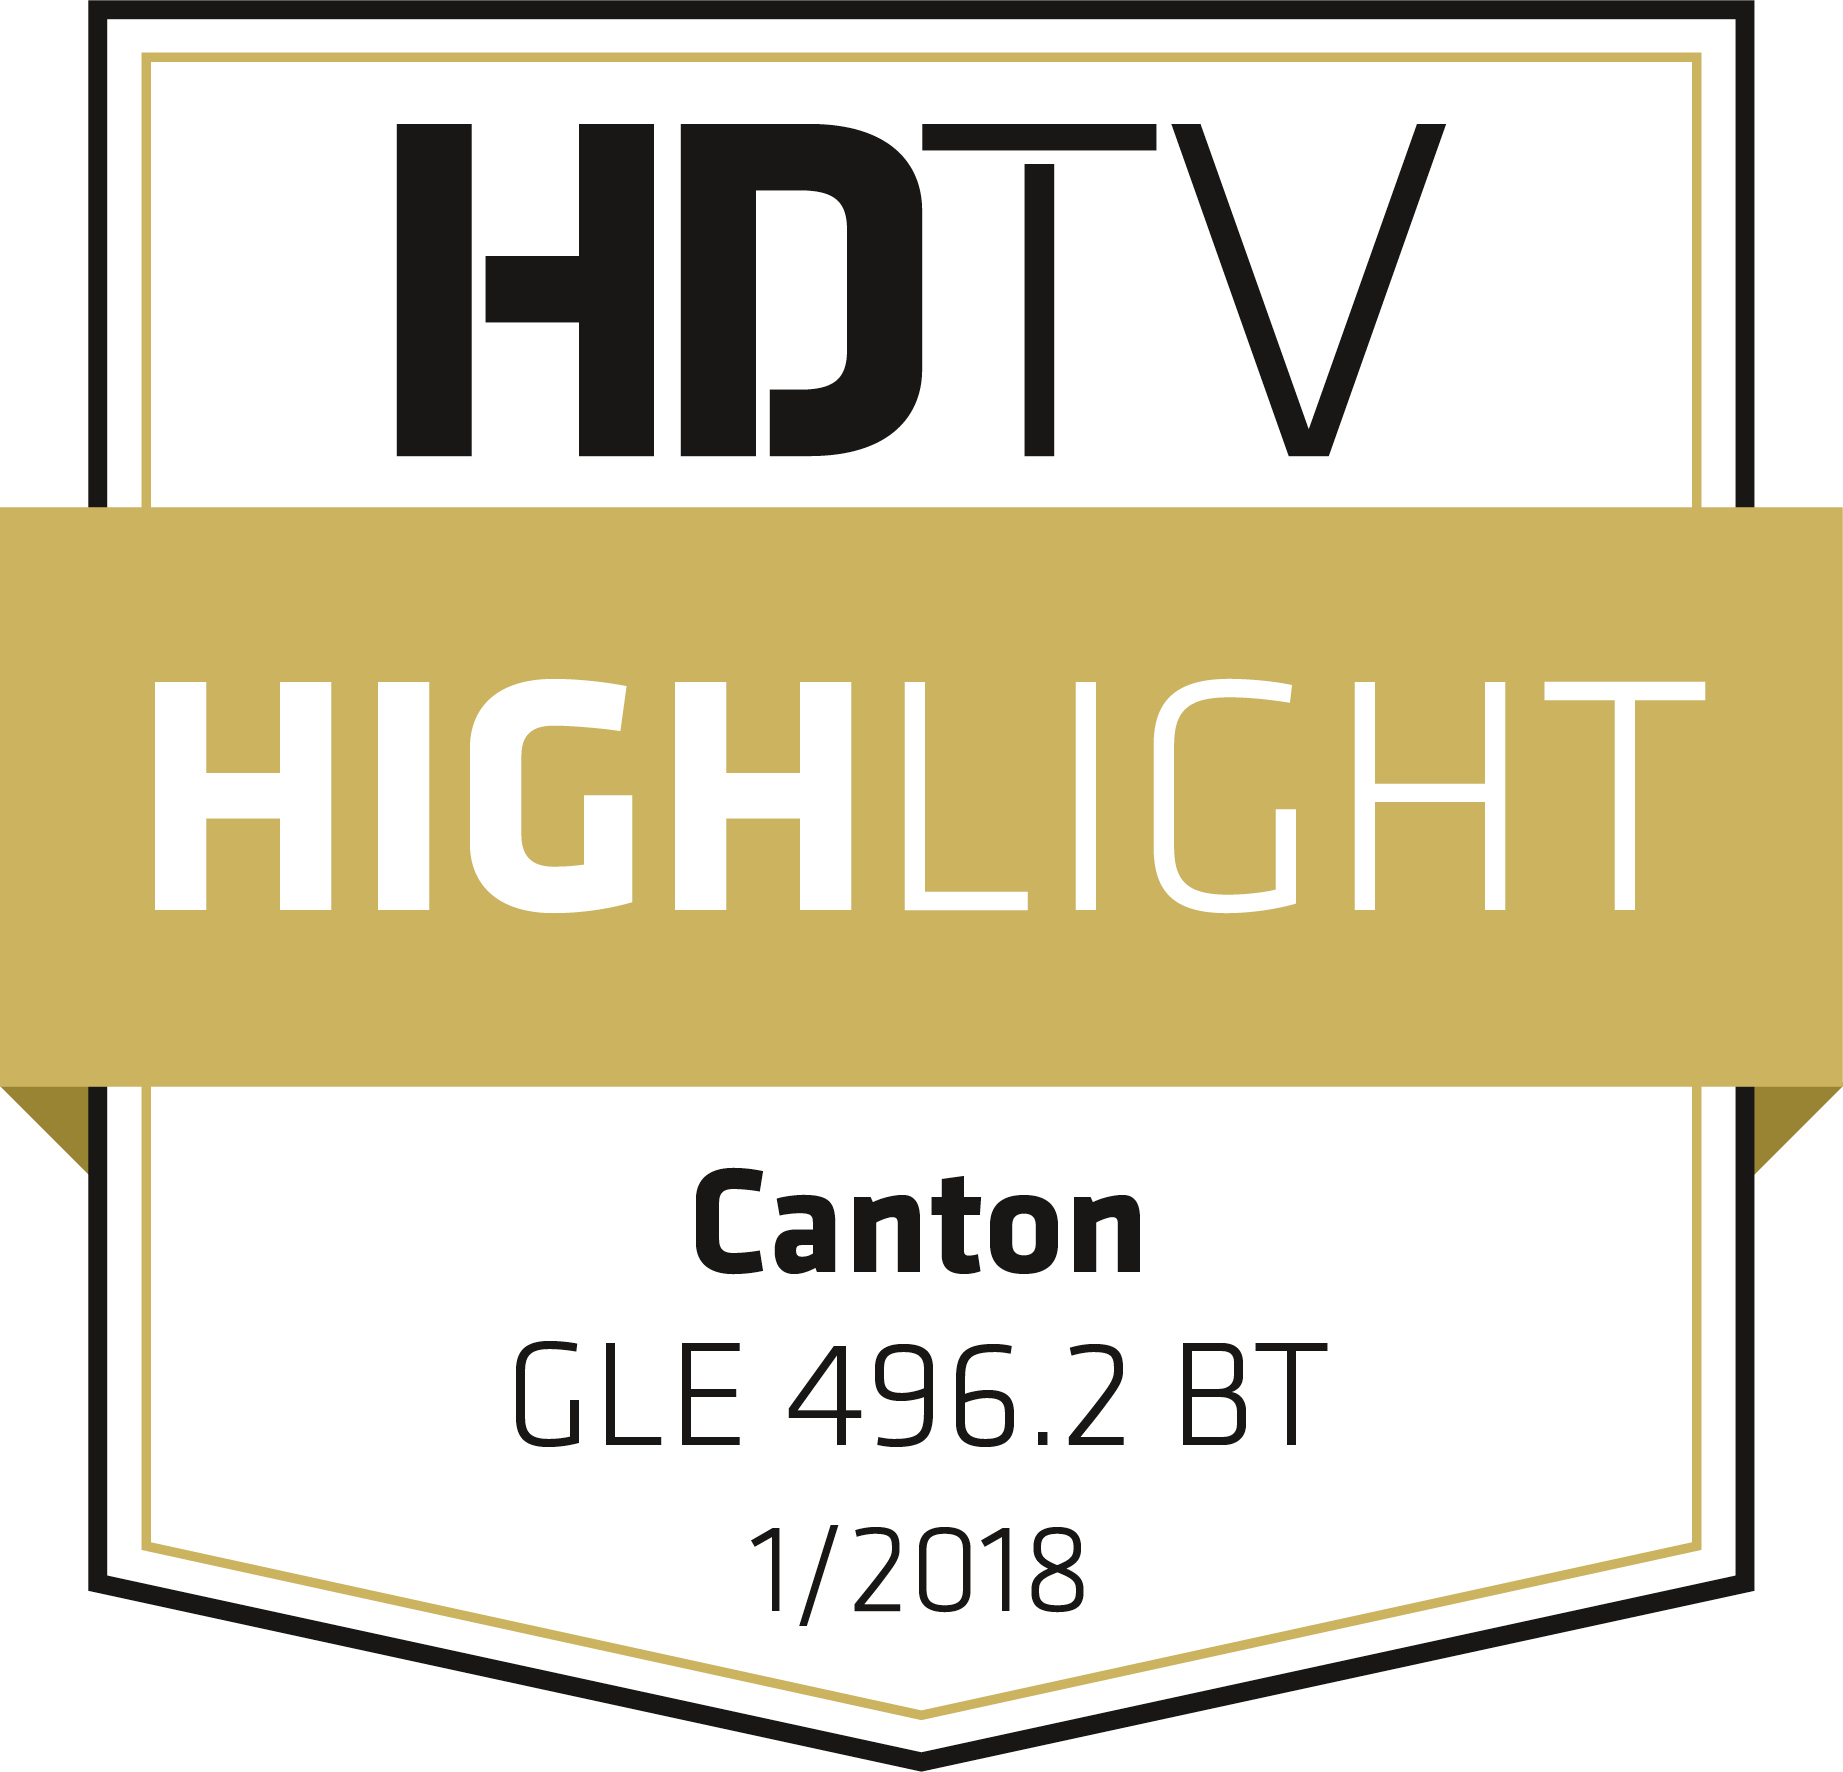 Canton-GLE-496-2-BT_Highlight